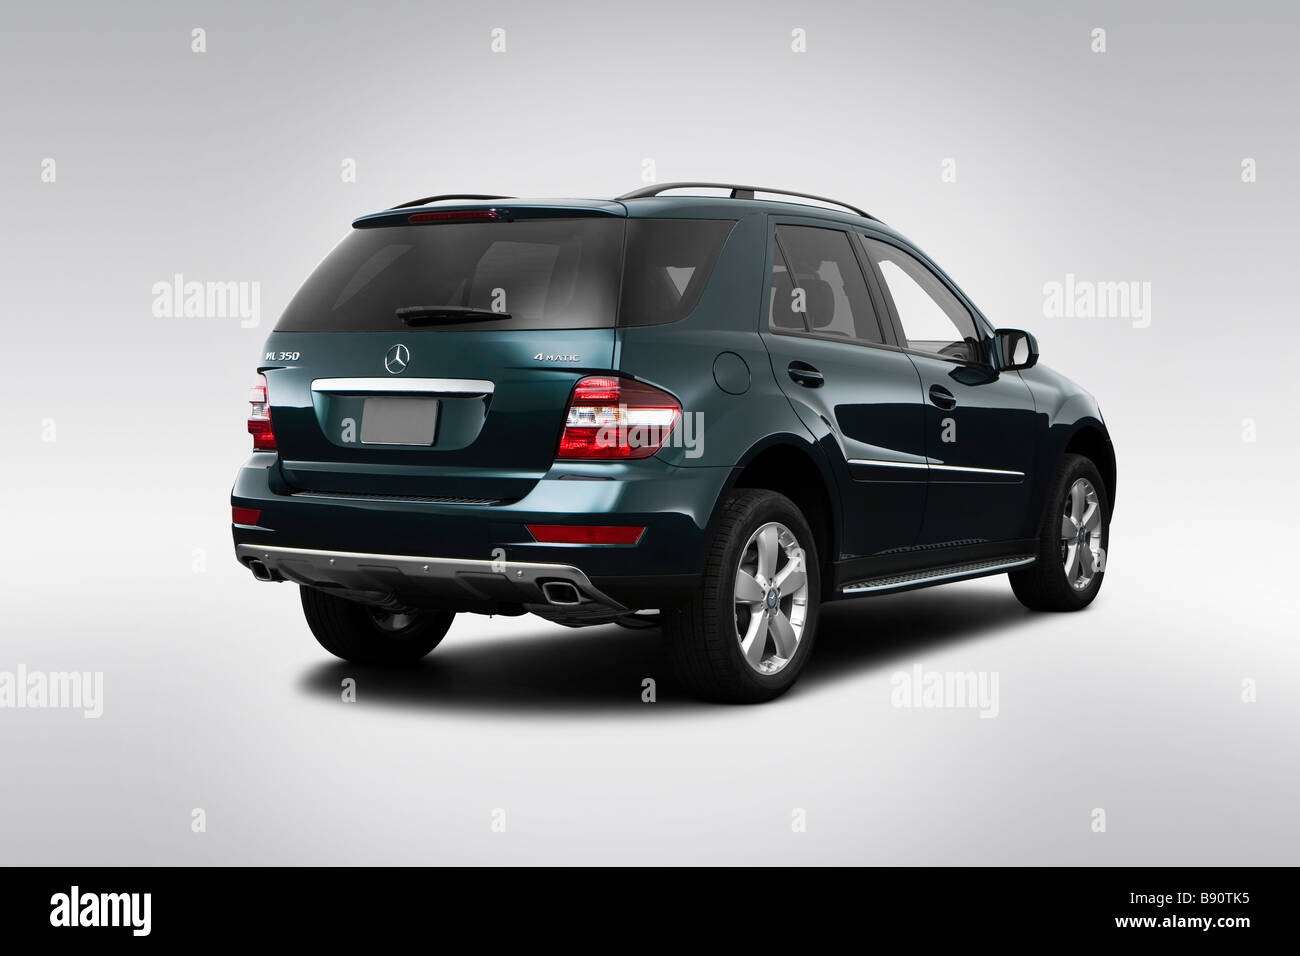 2009 mercedes benz m class ml350 in green rear angle for Mercedes benz ml350 2009